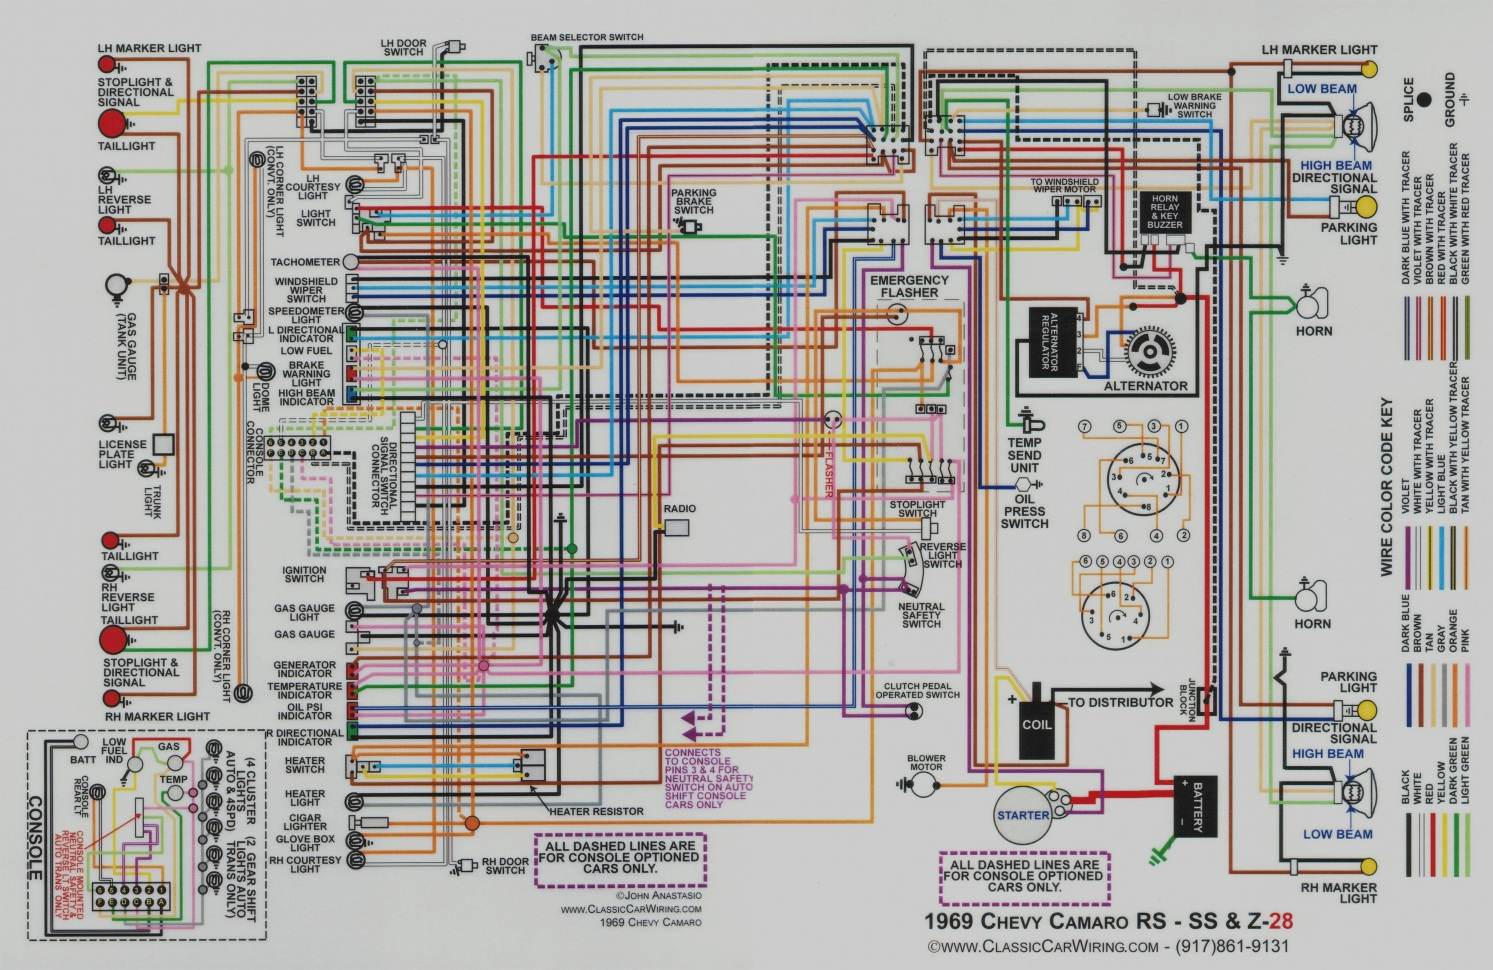 Wiring Diagram For 67 Camaro Get Free Image About Wiring Diagram